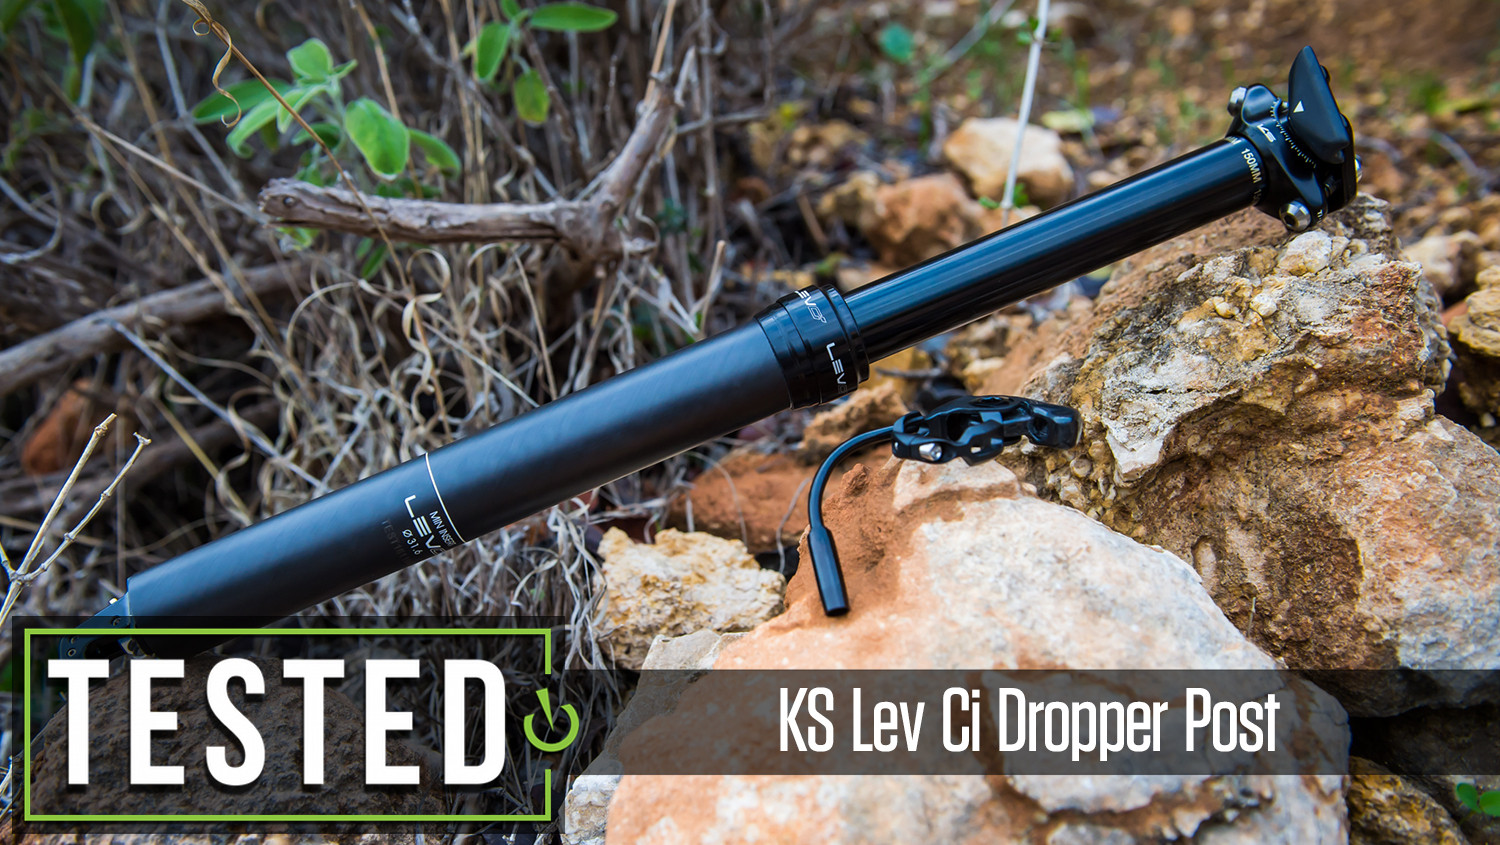 Tested: KS Lev Ci Dropper Post